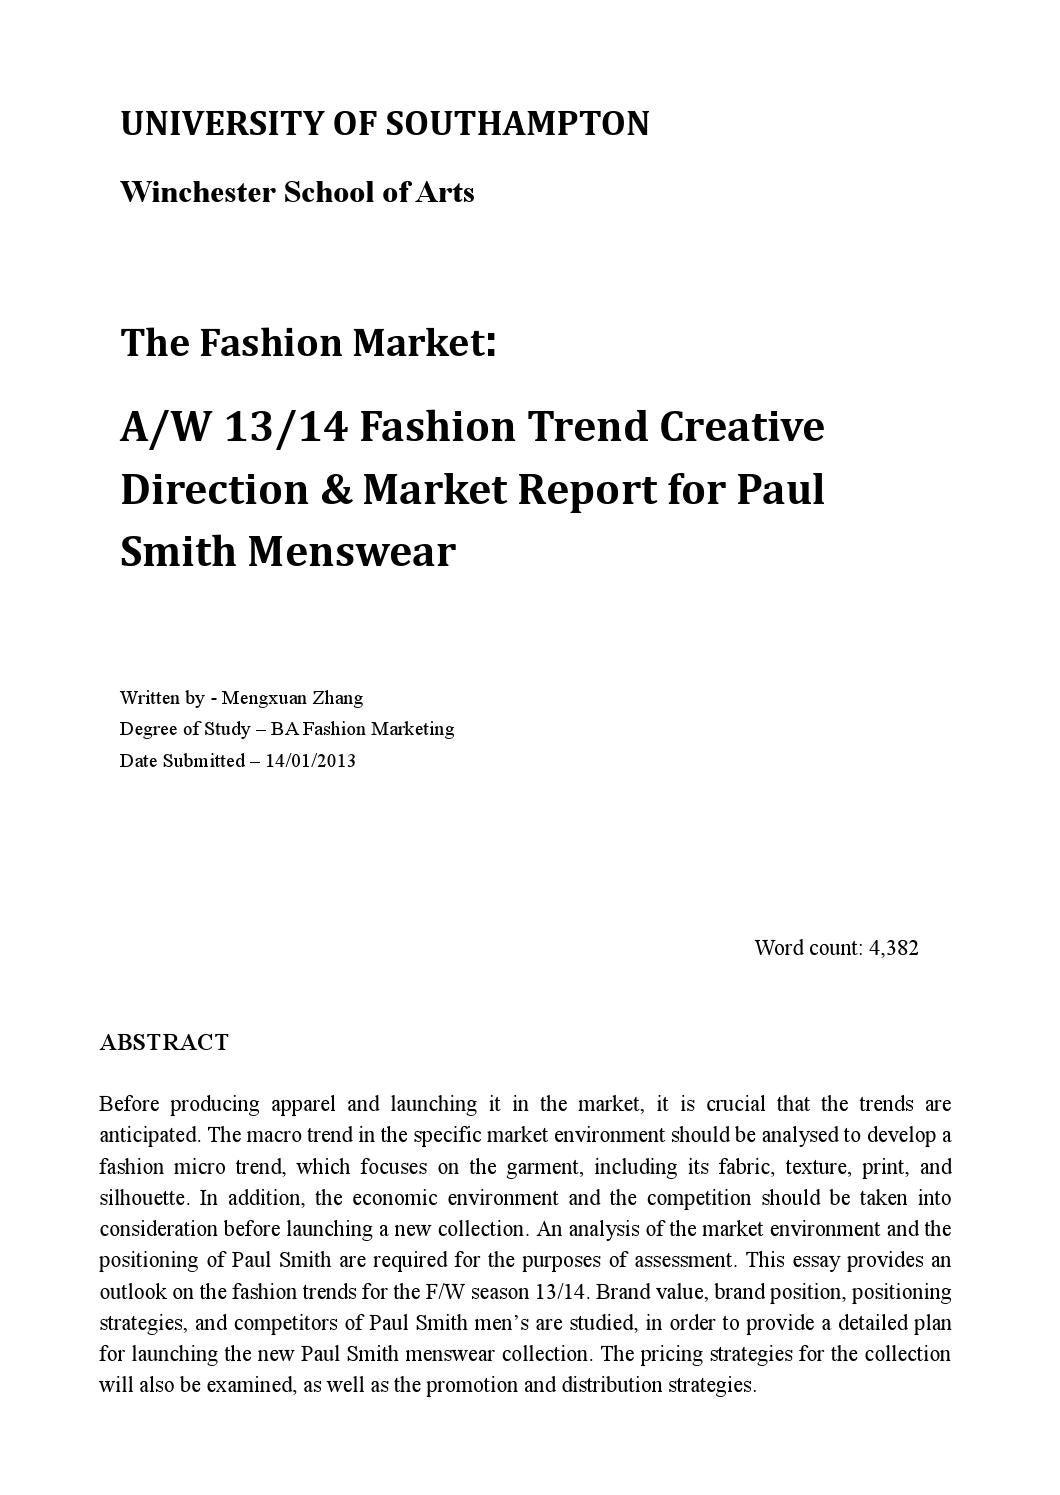 the fashion market by becky harris  a w 13 14 fashion trend creative direction market report for paul smith